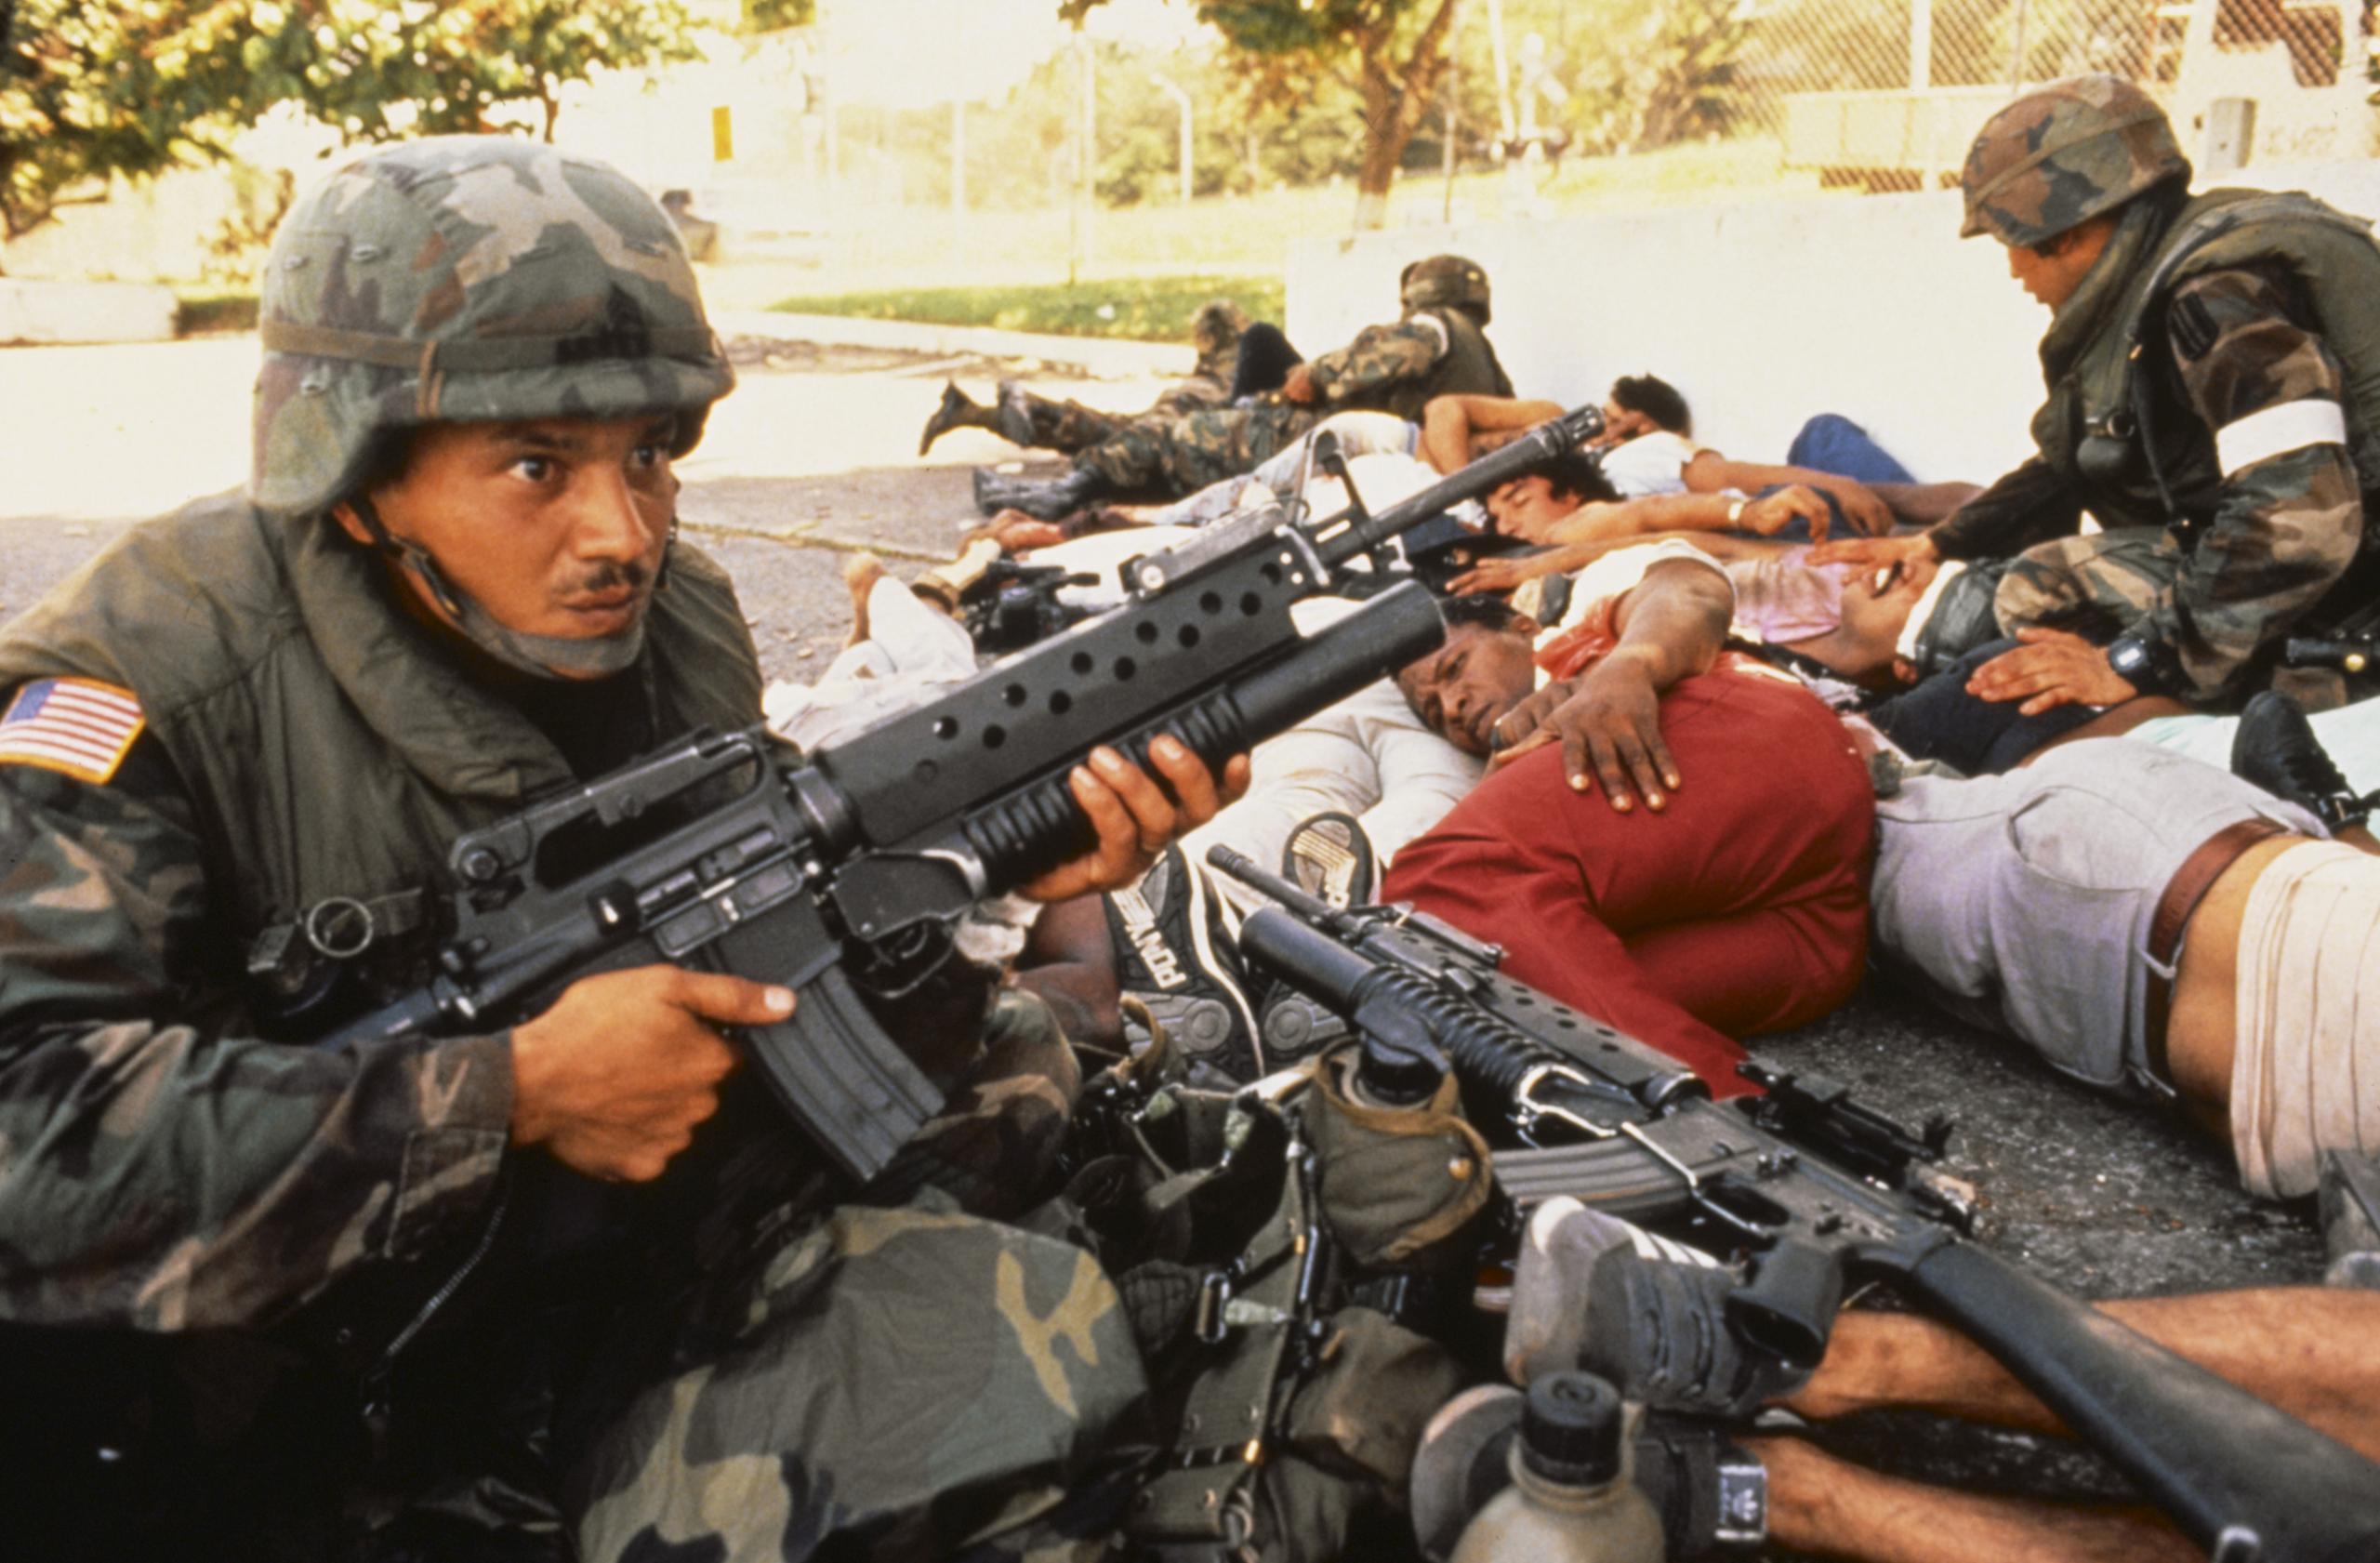 us troops taking cover with civvies in grenada.jpg